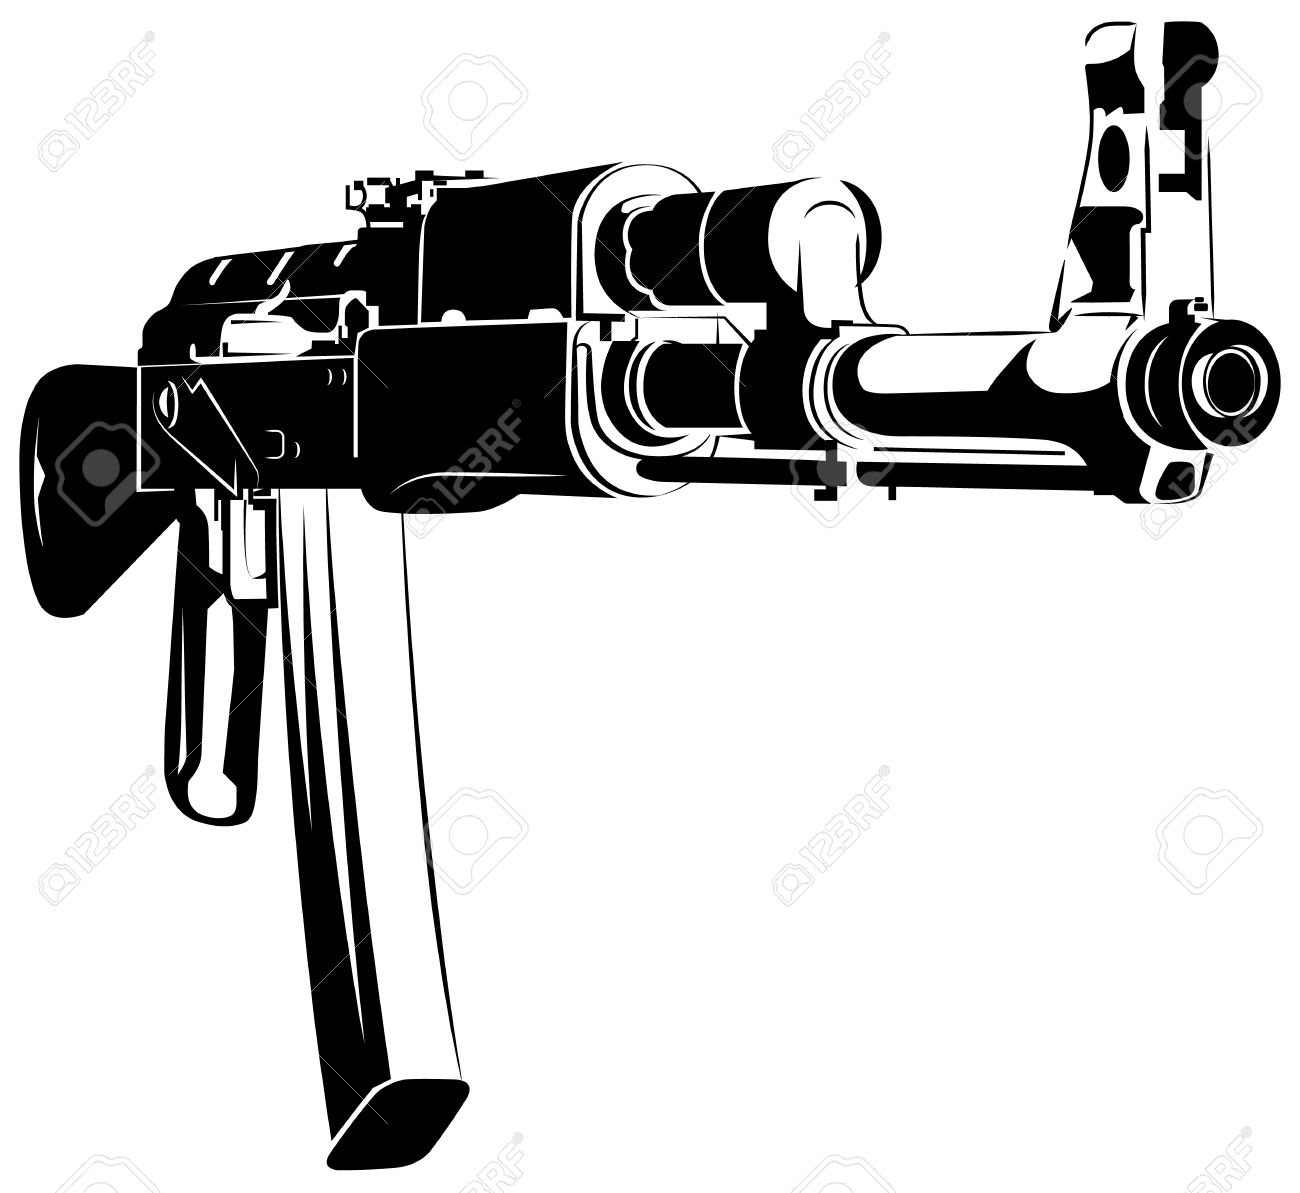 ak 47 clipart free download best ak 47 clipart on clipartmag com